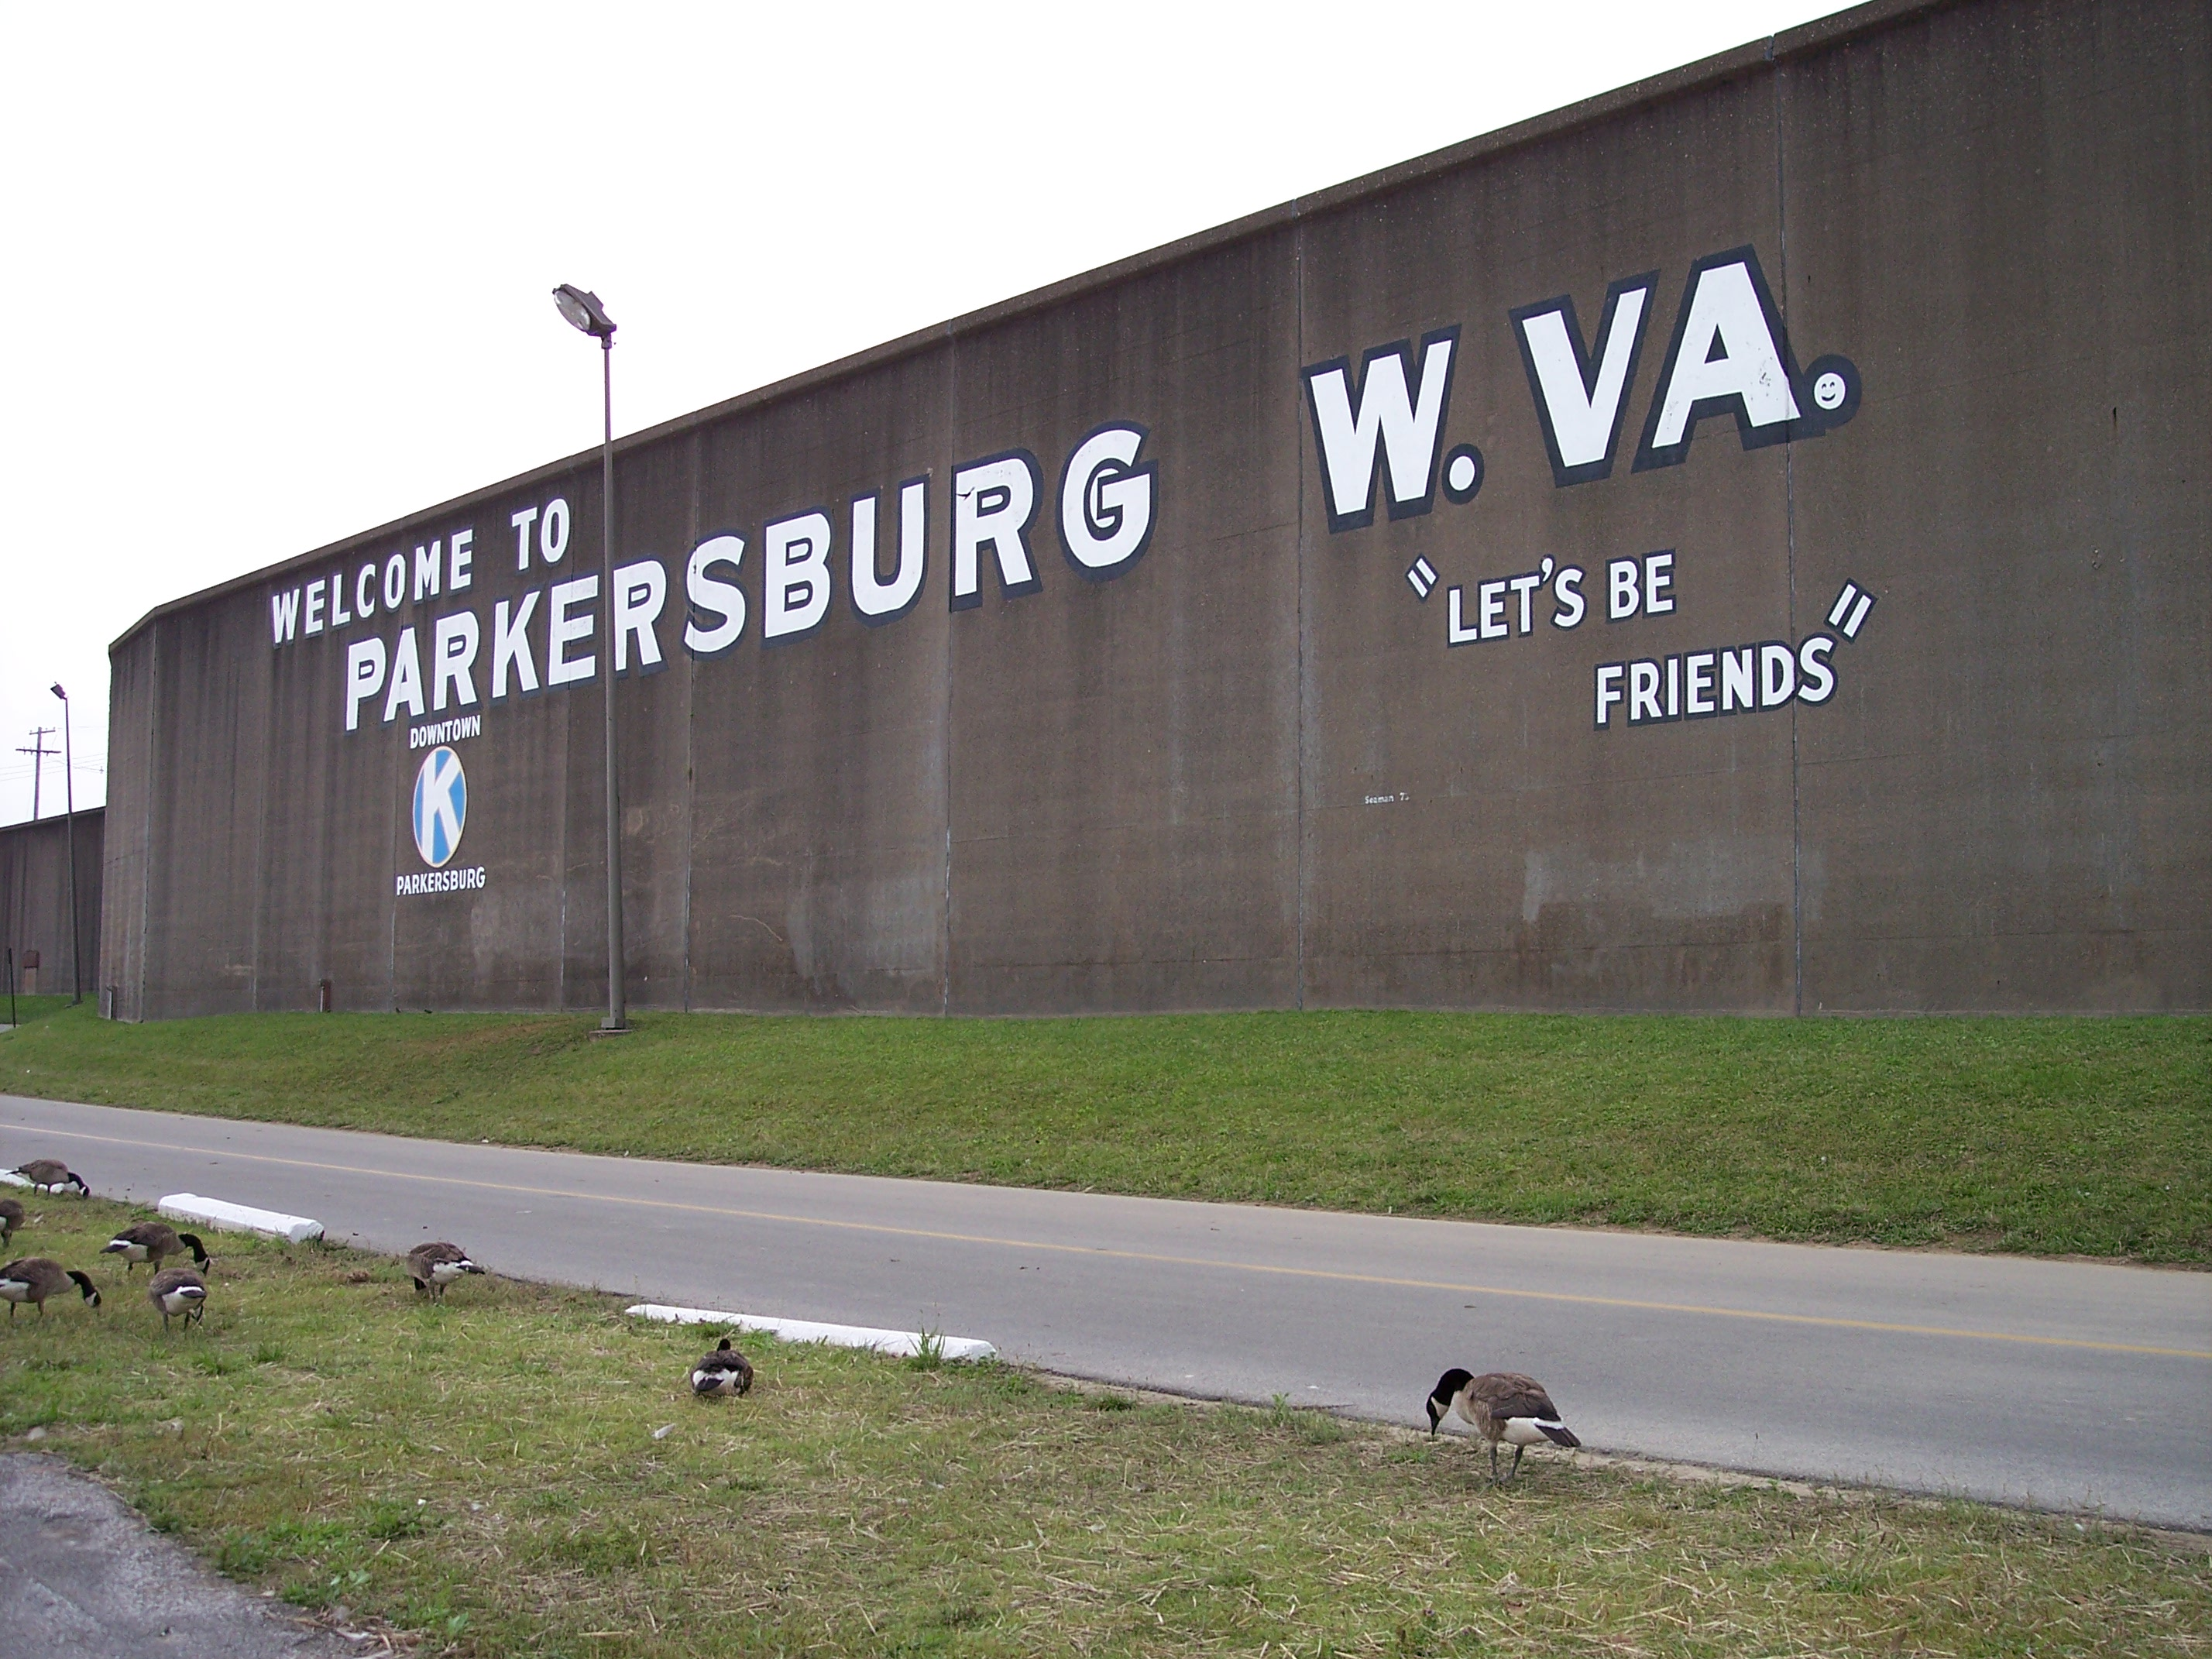 A present-day view of the floodwall with its welcoming mural. Nearby is The Point, where a park allows visitors a recreational space at the confluence of the Little Kanawha and Ohio Rivers.